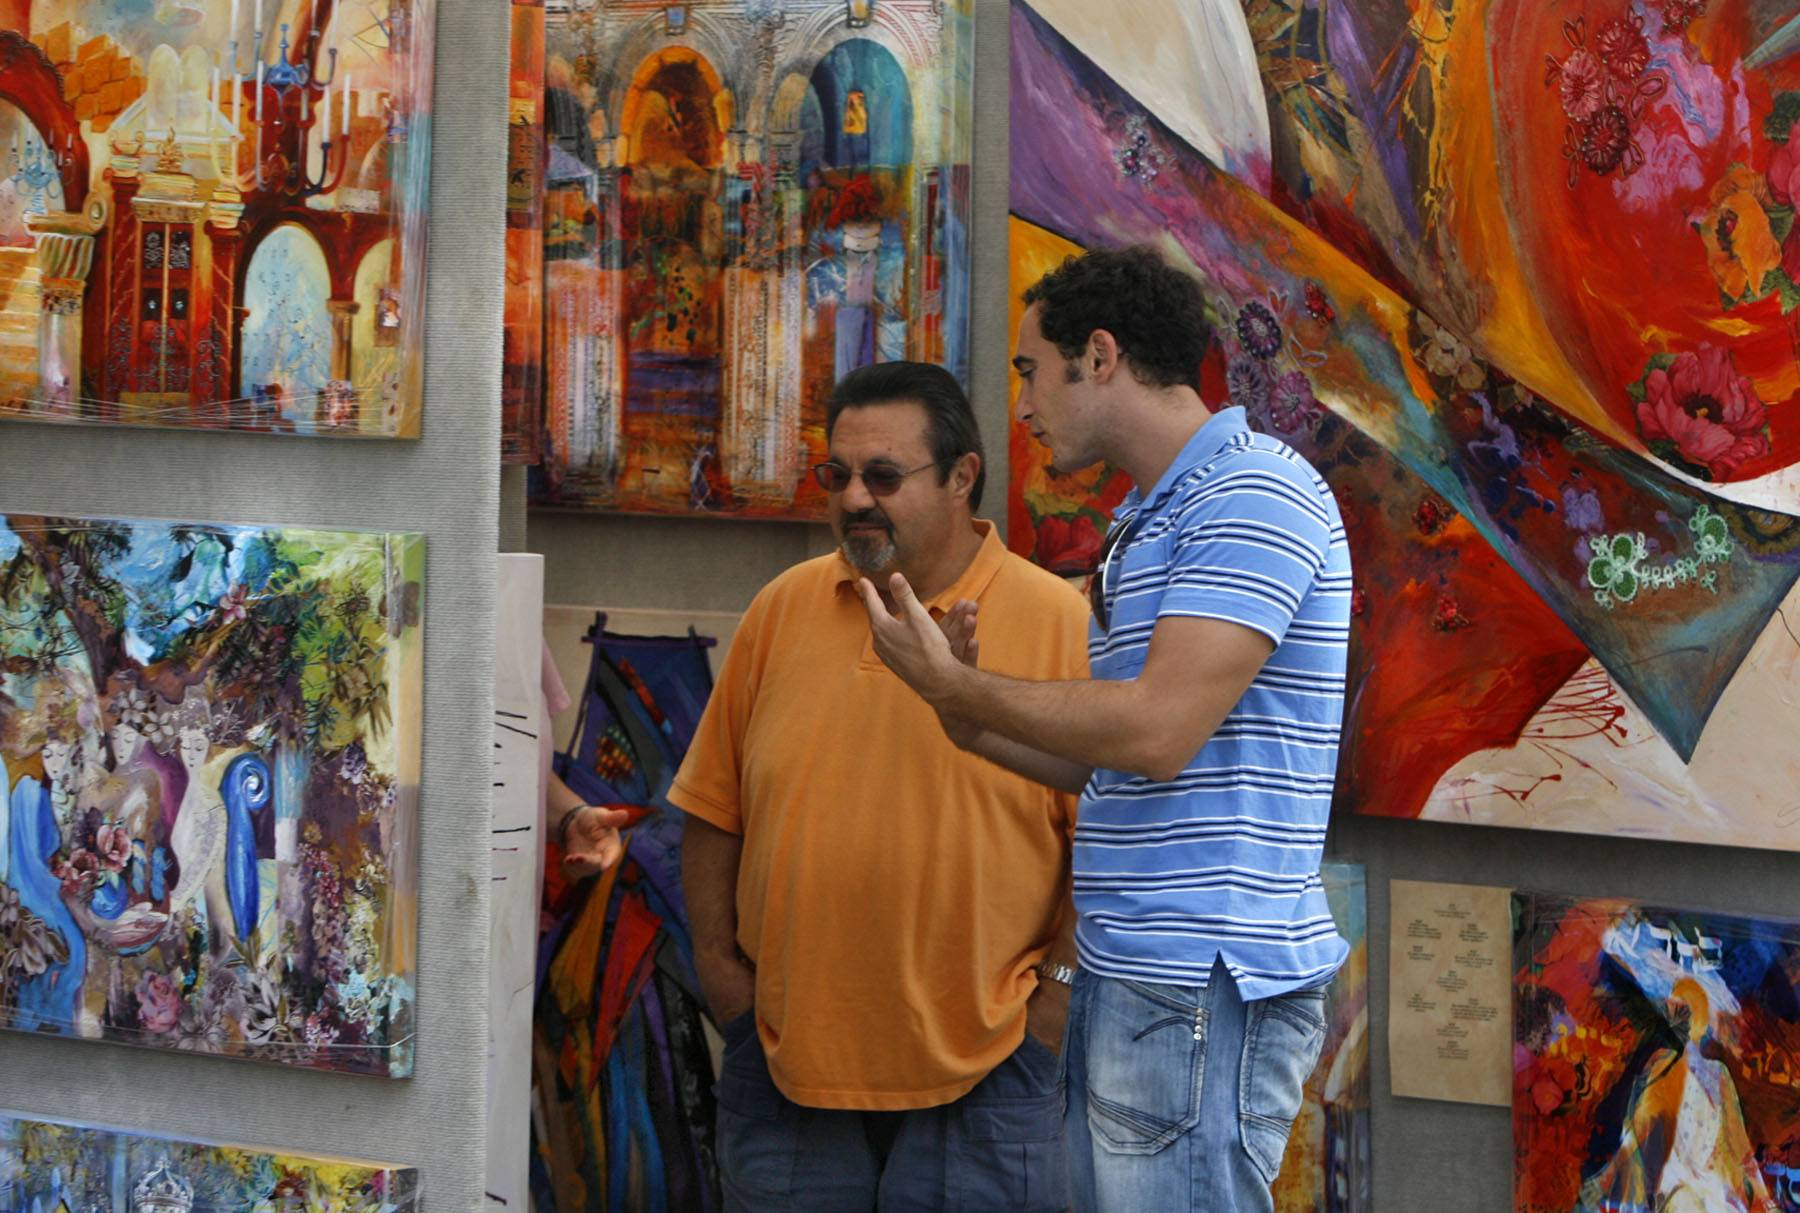 Smadar Livne of Baltimore explains his paintings to Bo Kuriniec of Deerfield at the 13th Annual Lincolnshire Art Festival. The festival marks its 17th year in 2014.